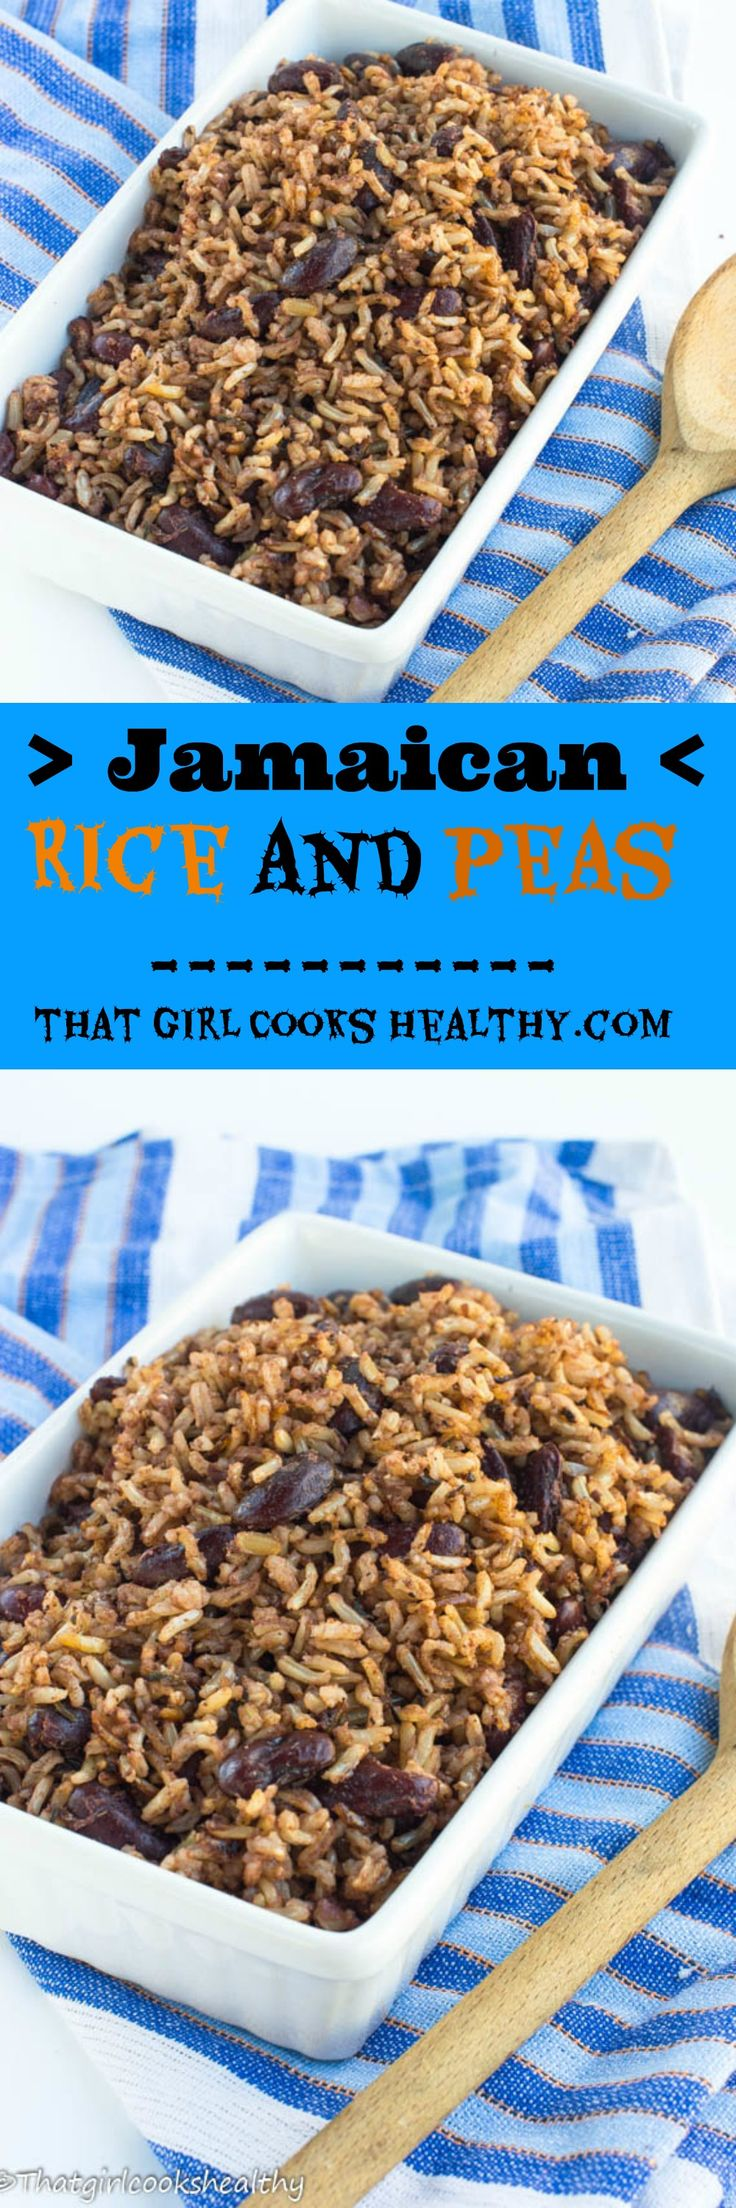 rice and peas Image